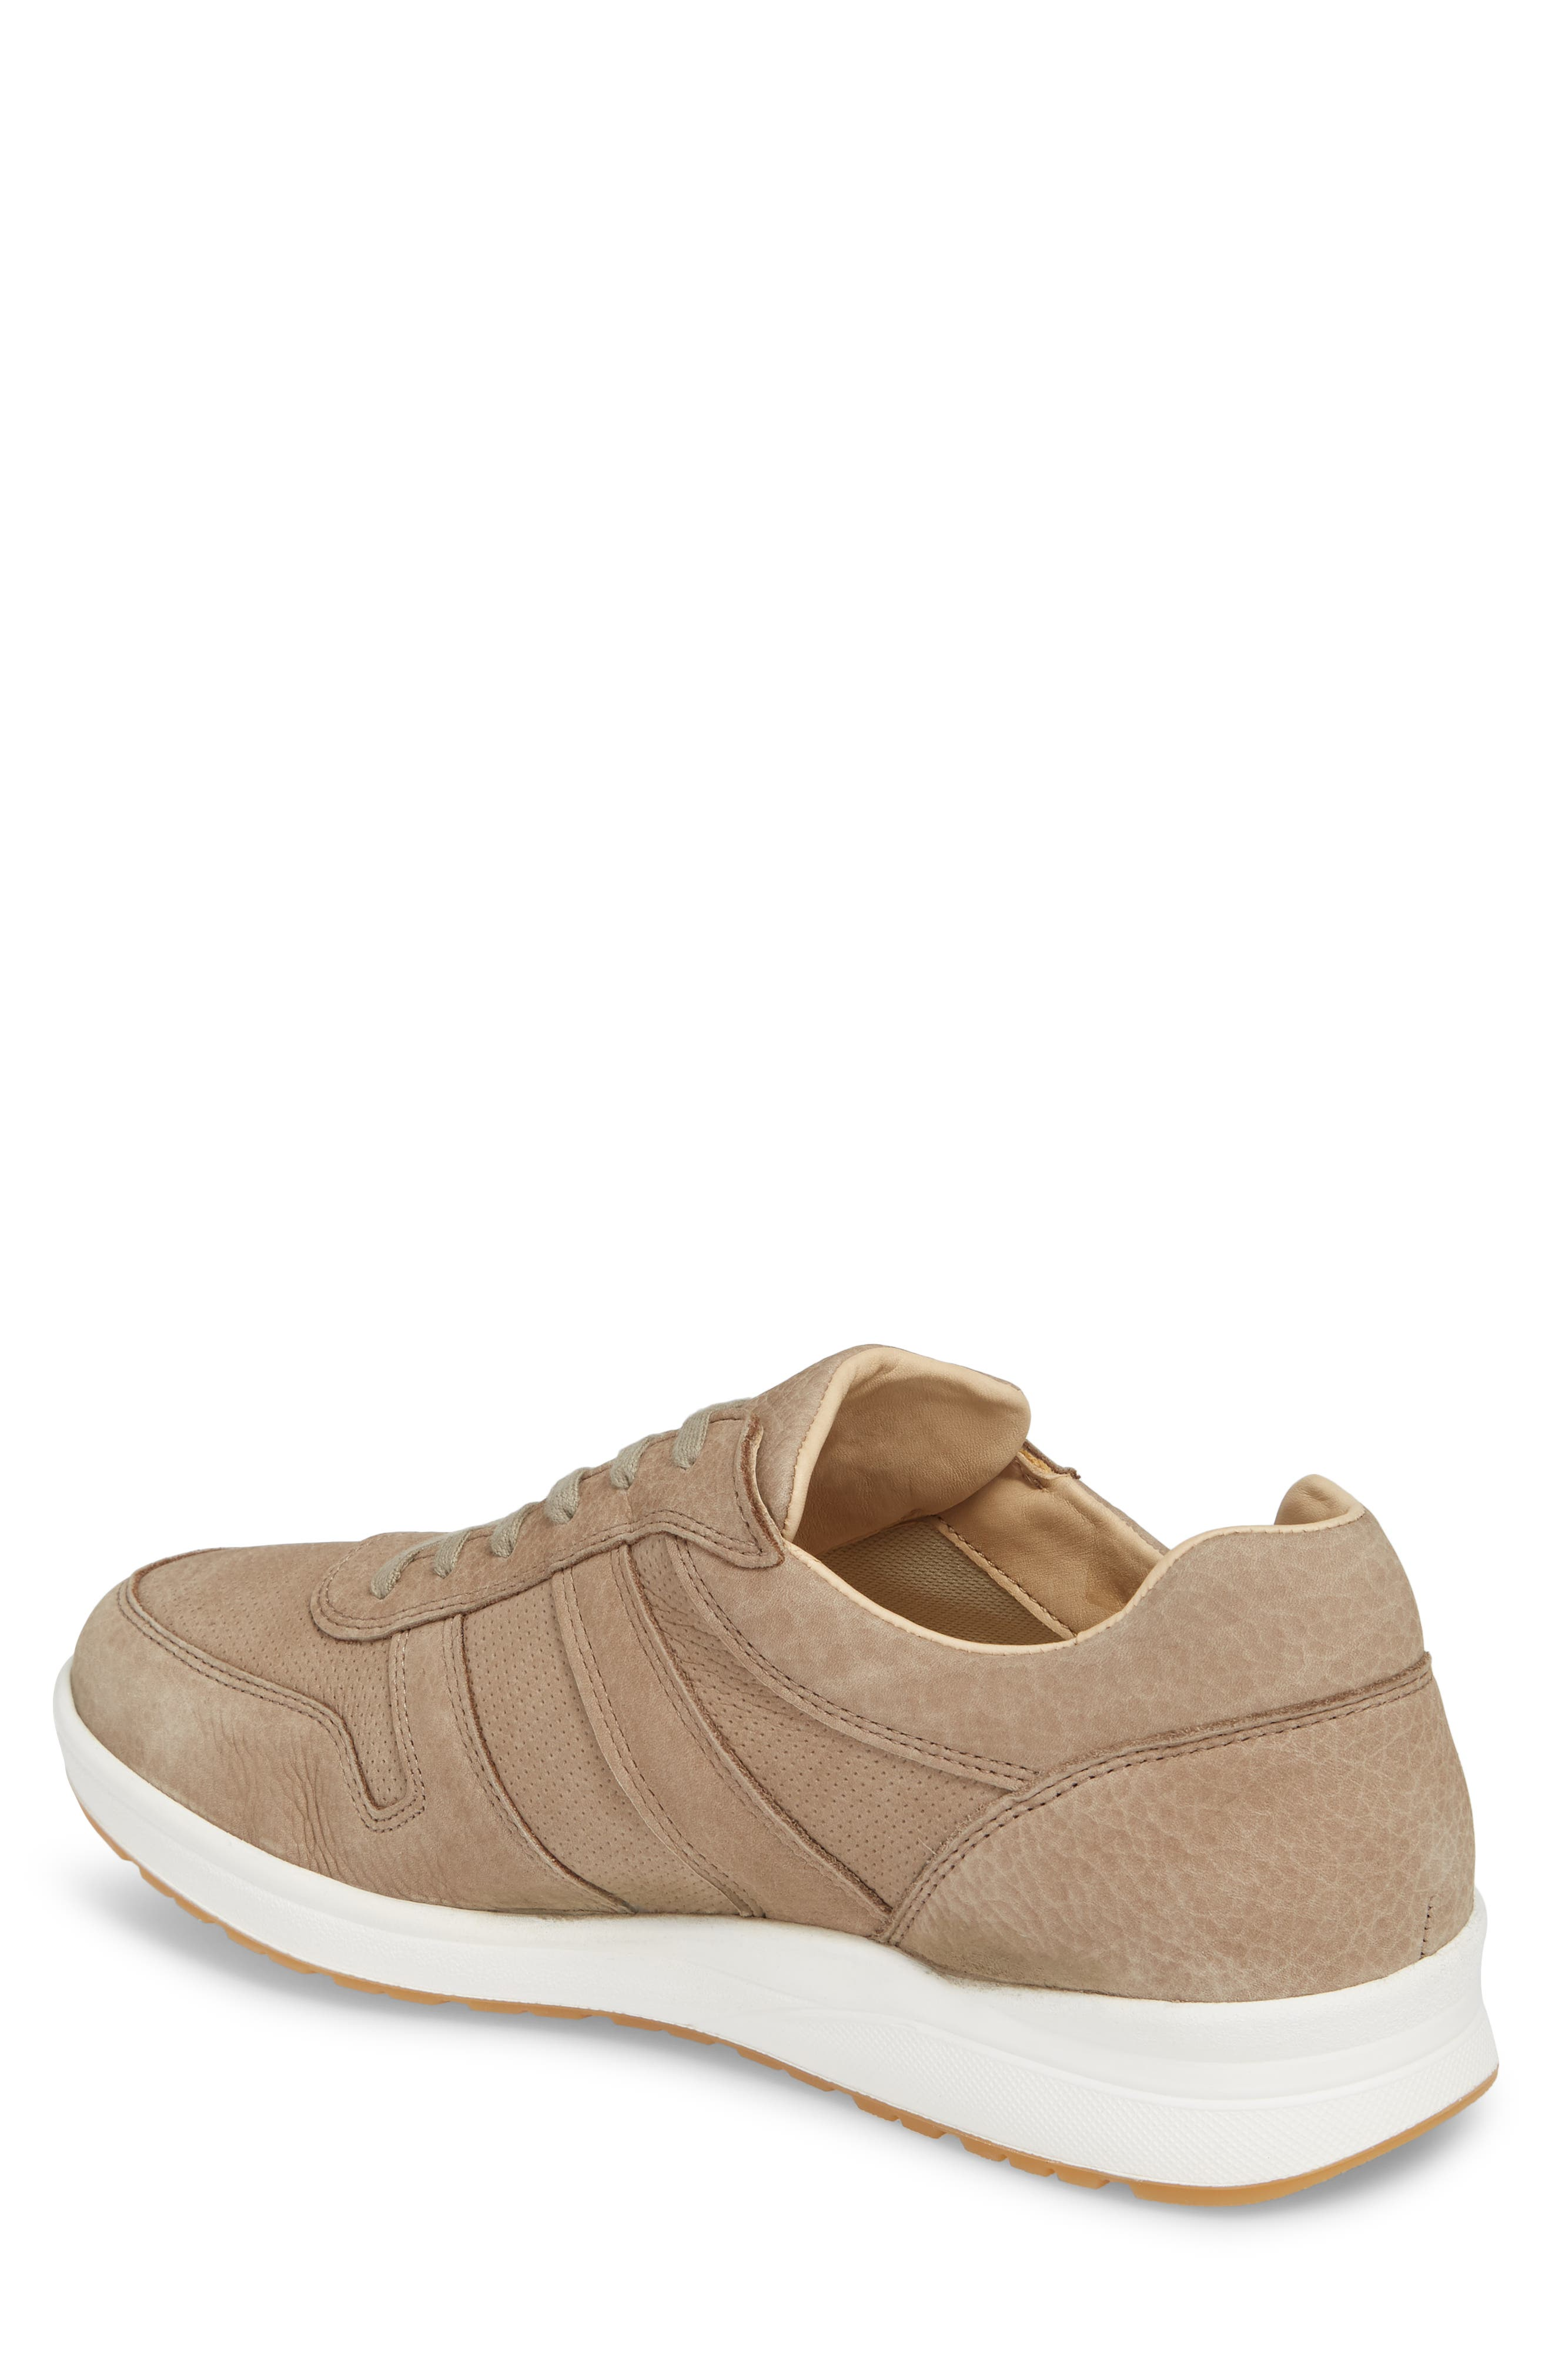 MEPHISTO, Vito Perforated Sneaker, Alternate thumbnail 2, color, SAND